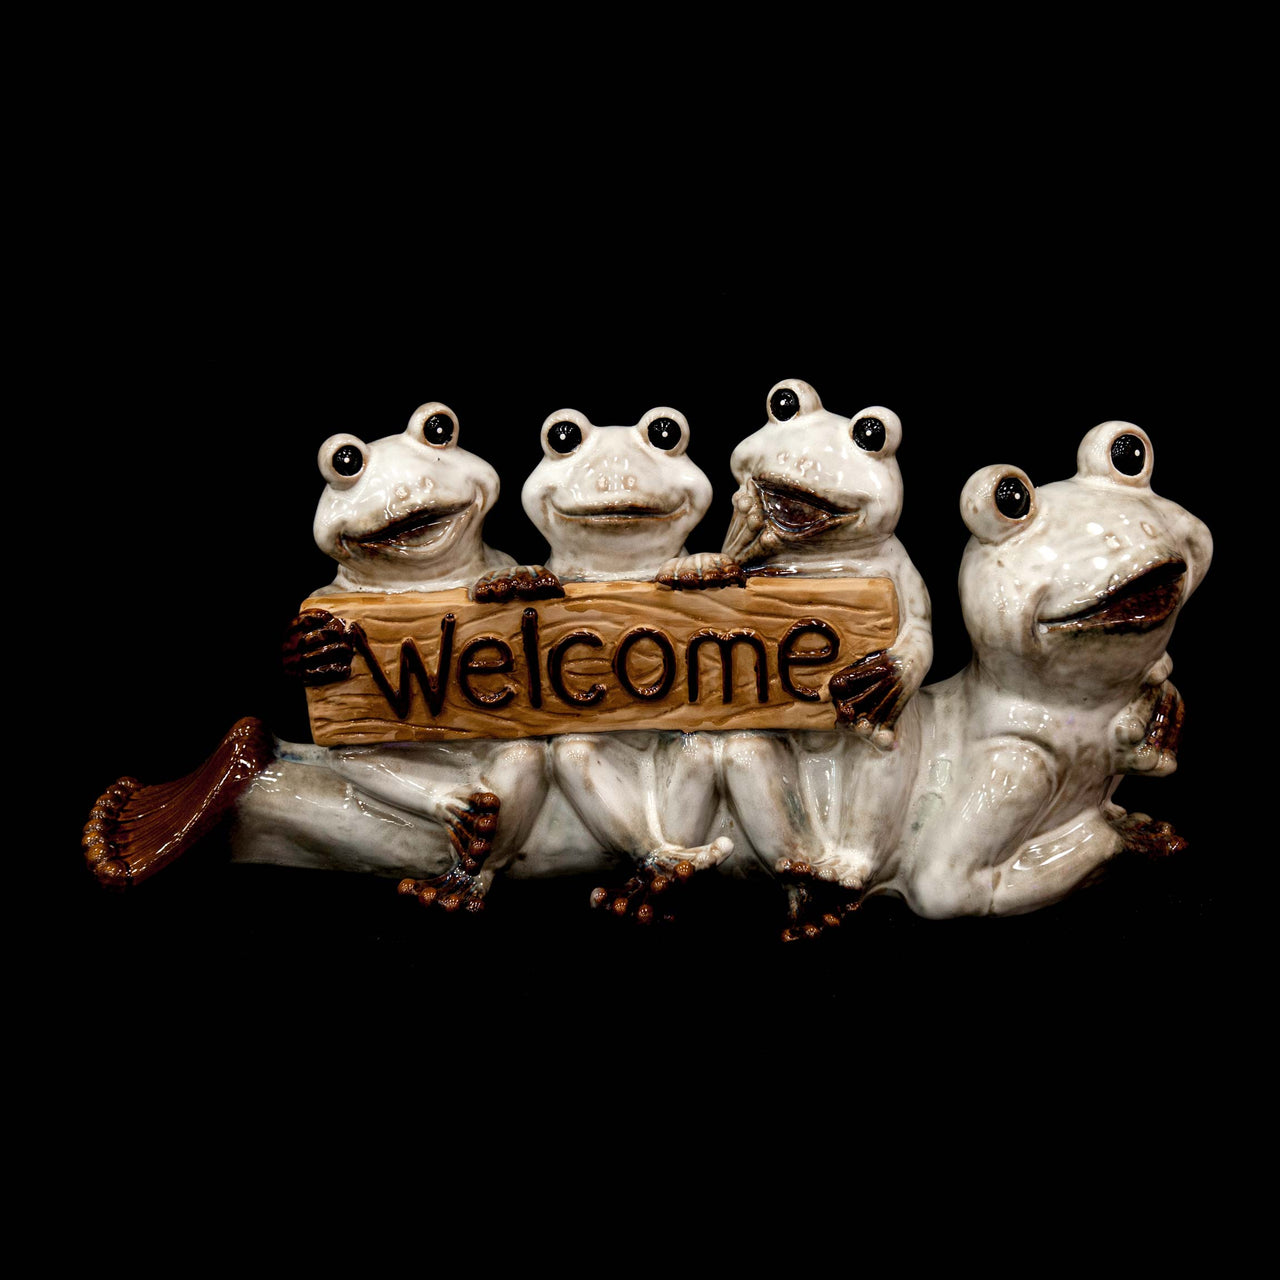 HCHD5317 - Ceramic Welcome Frogs